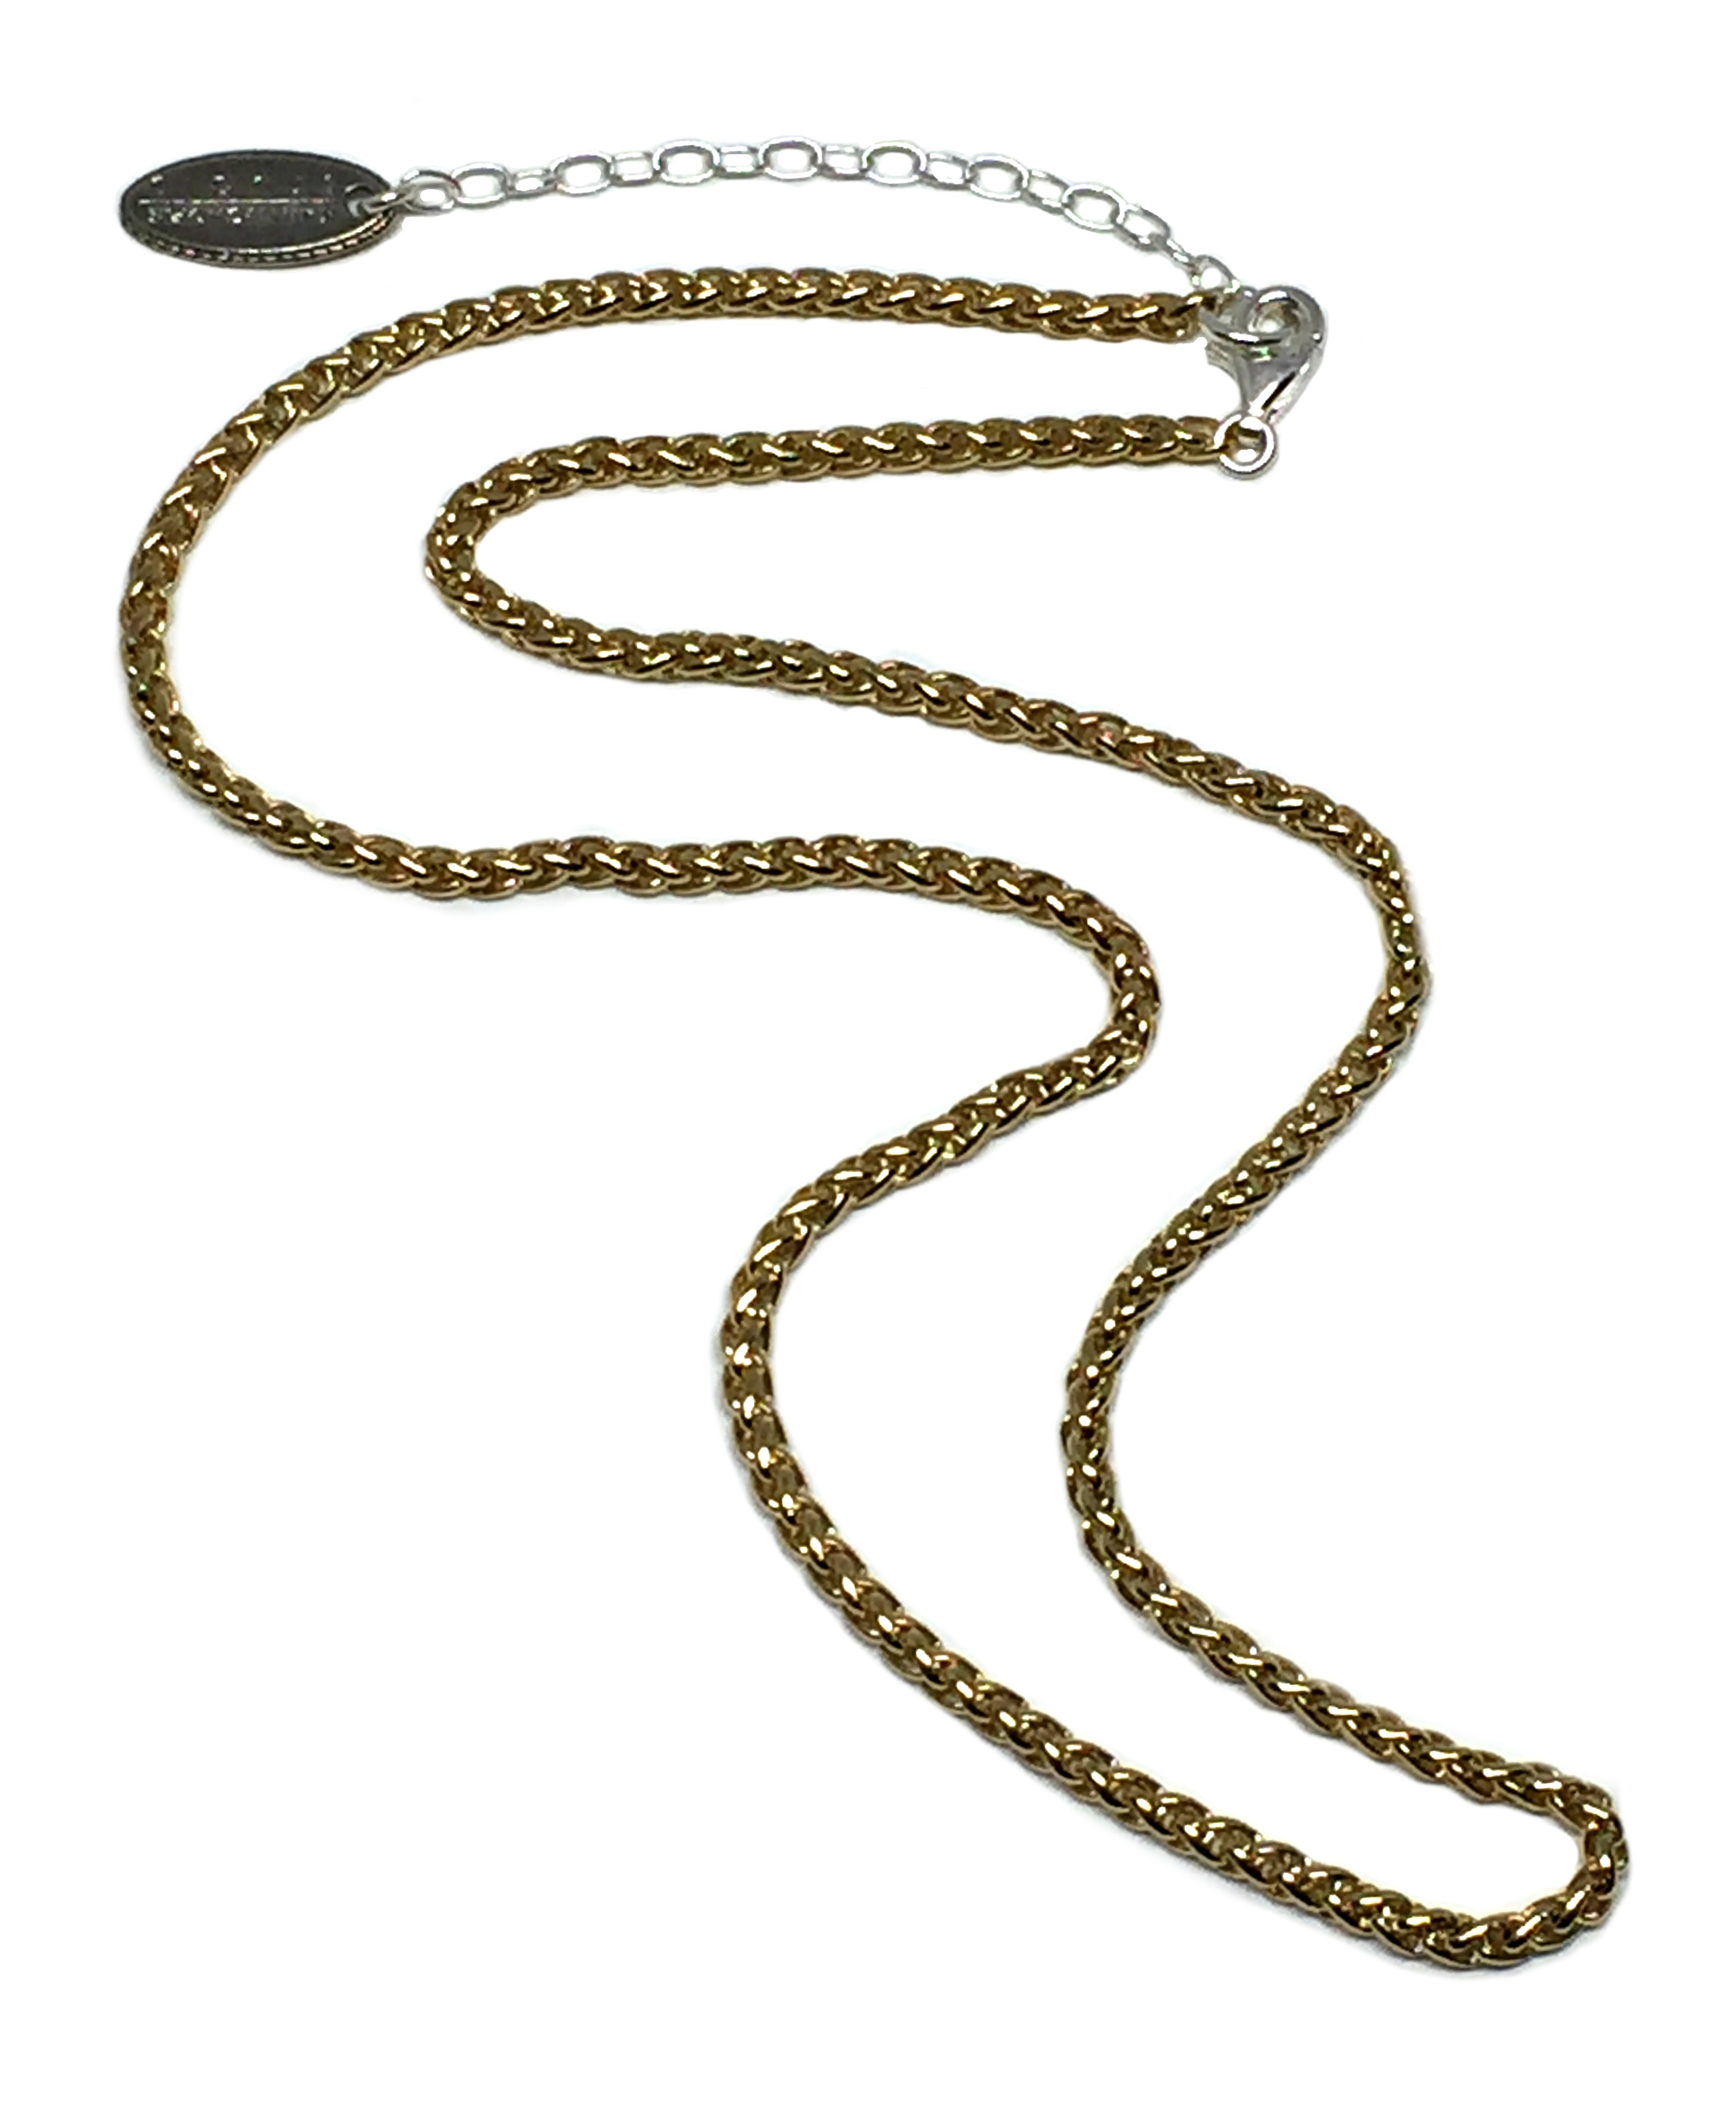 14 karat gold chain by Karyn Chopik | Effusion Art Gallery + Cast Glass Studio, Invermere BC